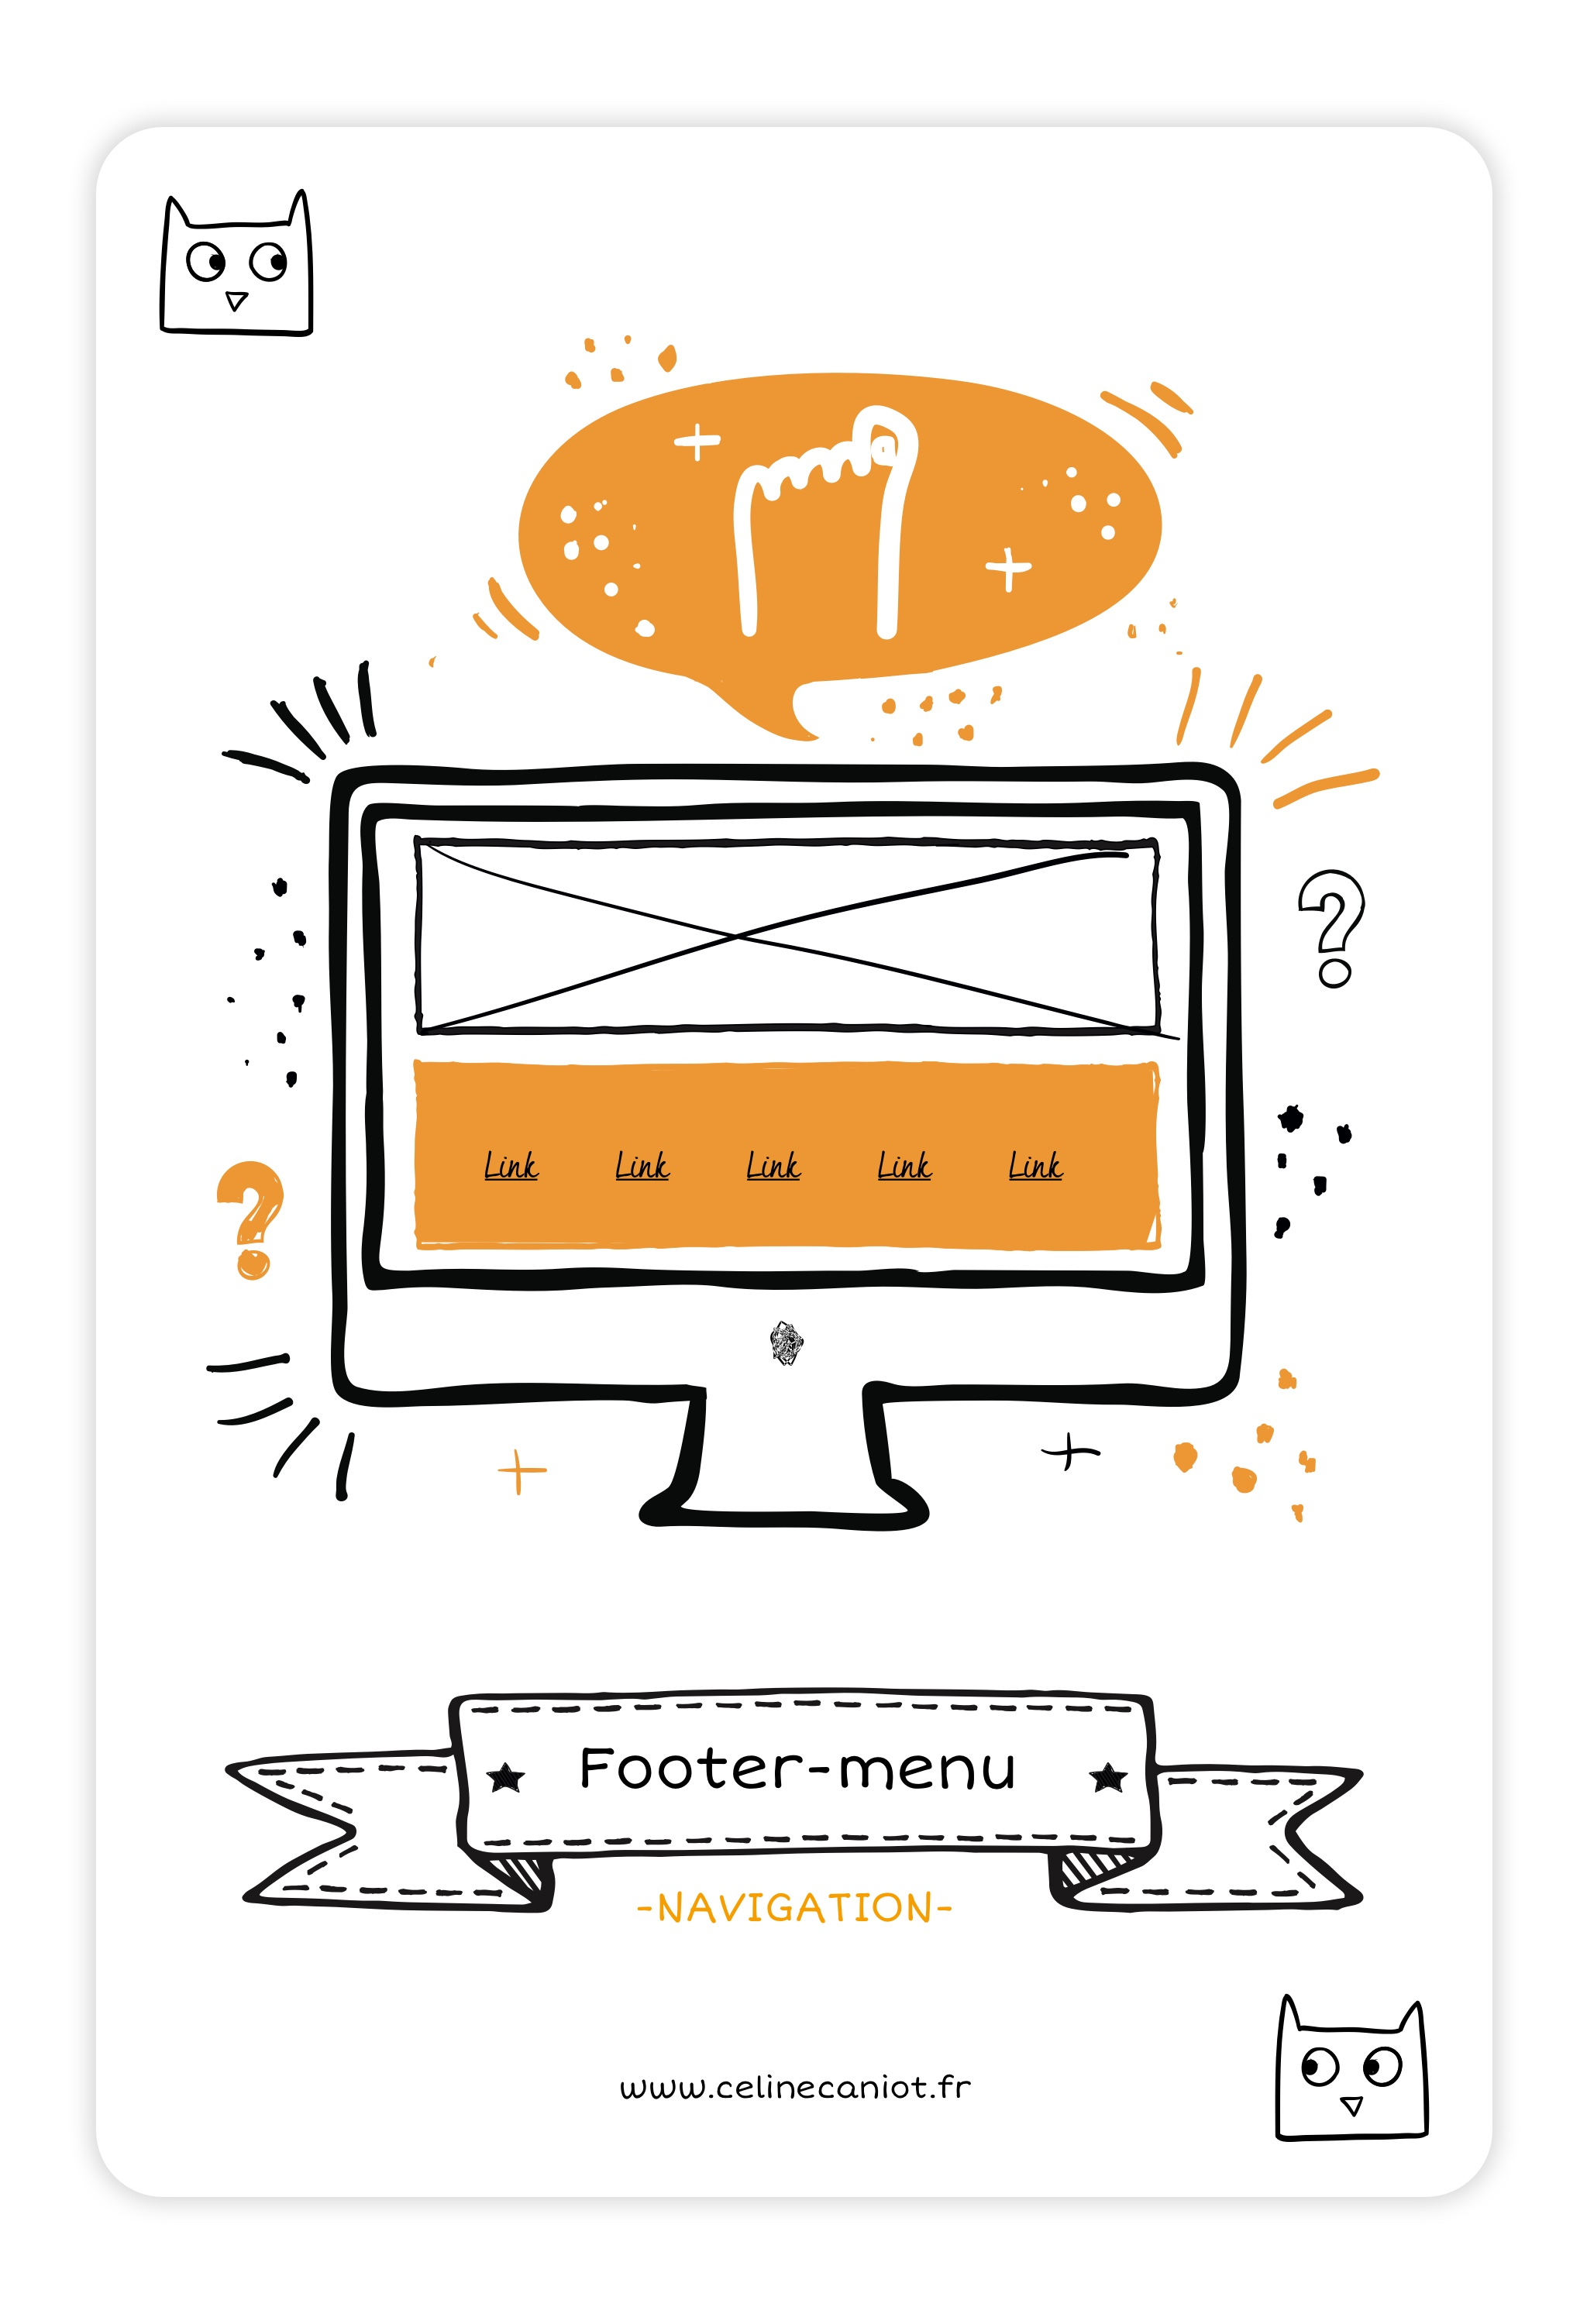 footer-menu-ux design